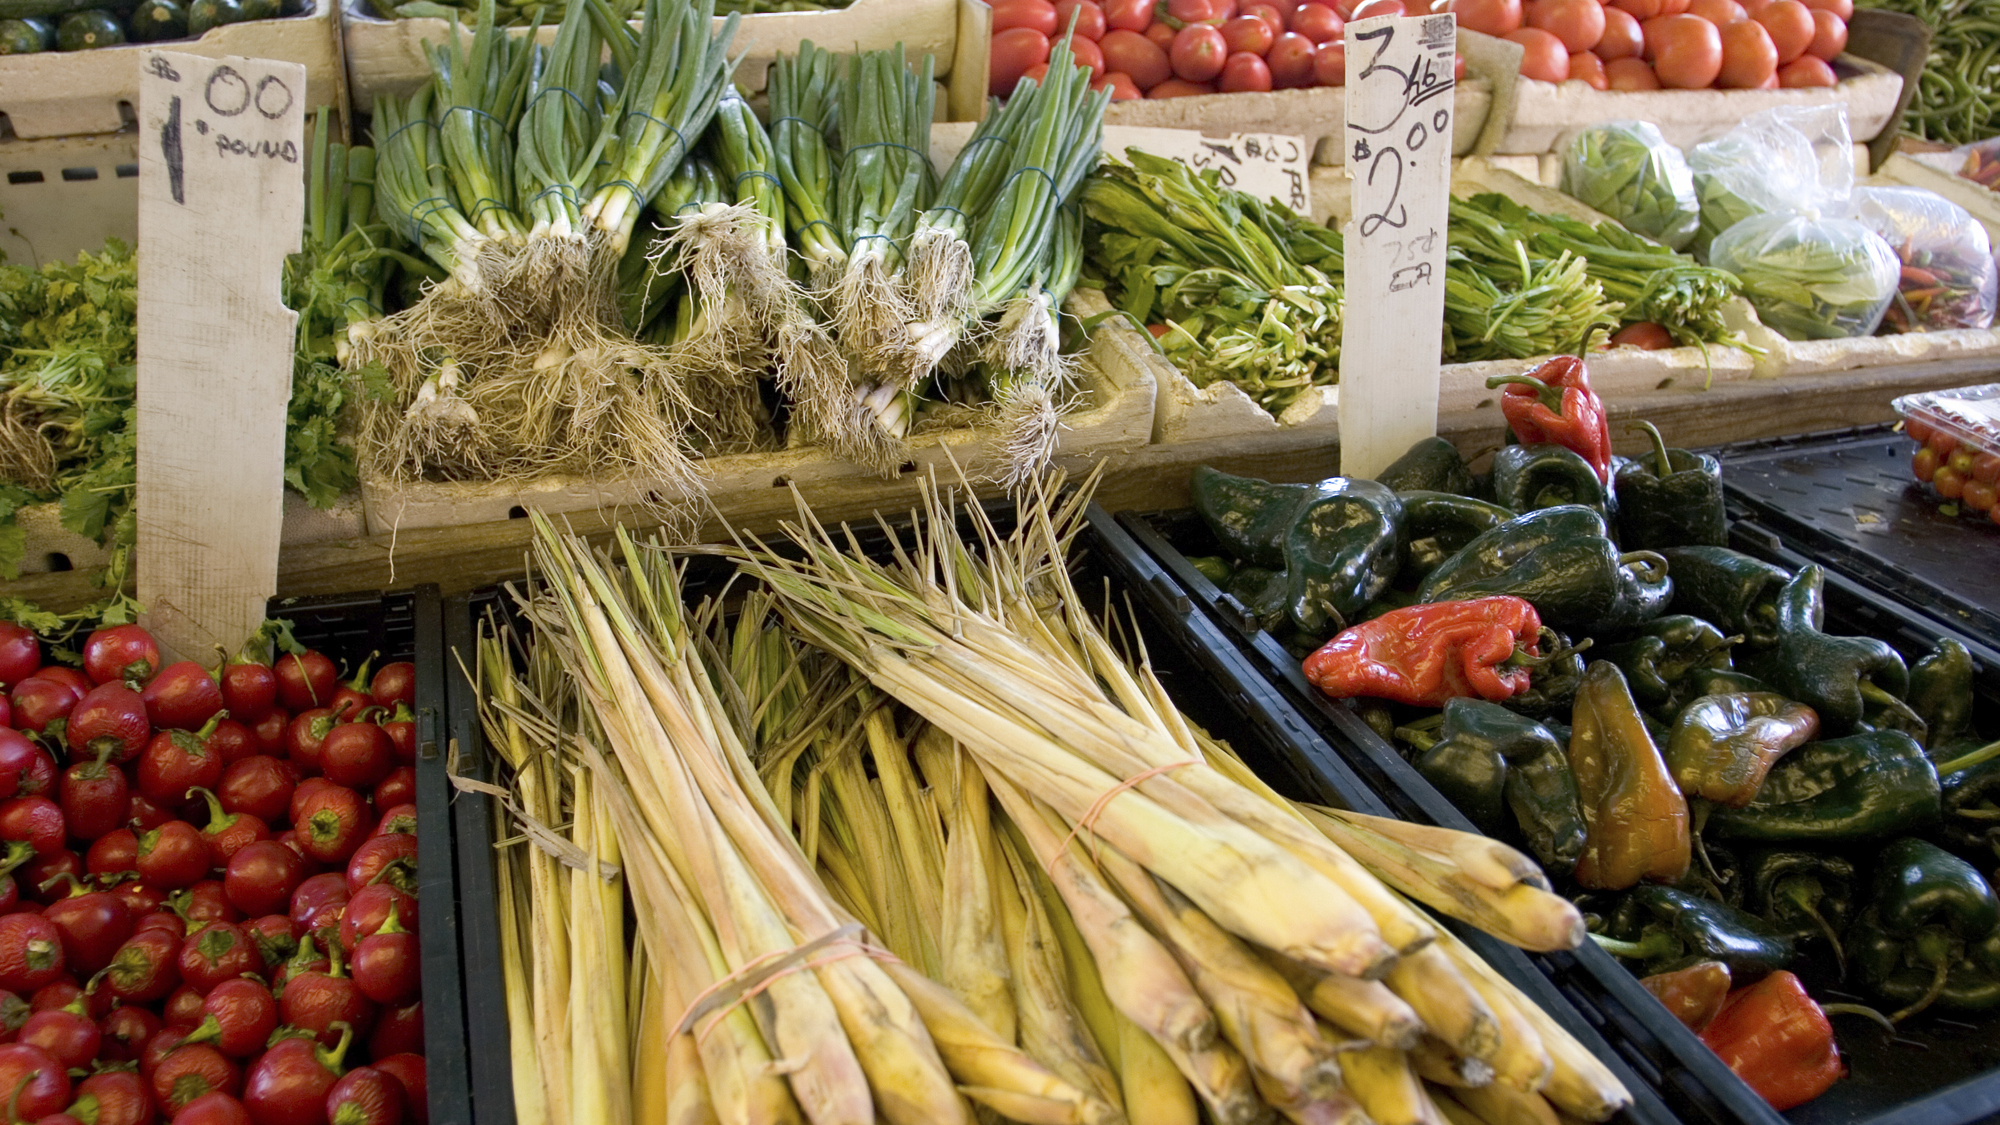 Apps Aim To Guide You On 'Sustainable Food' (Whatever That Means)